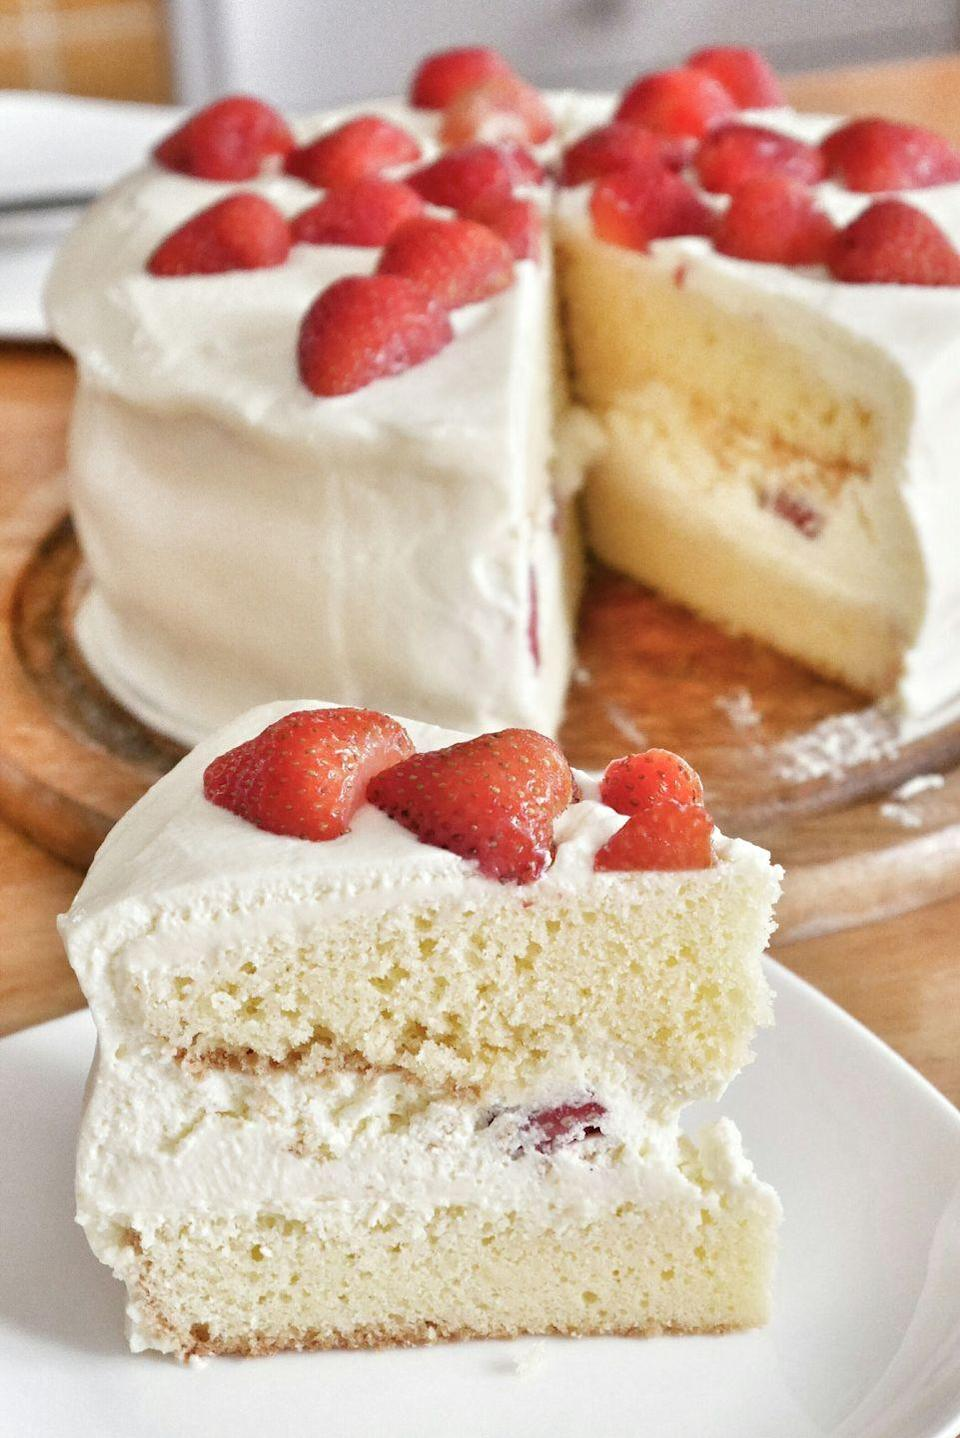 """<p>This cake is a cross between strawberry shortcake (a summer classic) and strawberry cake. Just imagine some bright, colorful sparklers sticking out of the white frosting — perfect for just before the fireworks.</p><p><em><strong>Get the recipe at <a href=""""https://www.thepioneerwoman.com/food-cooking/recipes/a11487/strawberry-shortcakecake/"""" rel=""""nofollow noopener"""" target=""""_blank"""" data-ylk=""""slk:The Pioneer Woman."""" class=""""link rapid-noclick-resp"""">The Pioneer Woman.</a></strong></em></p>"""